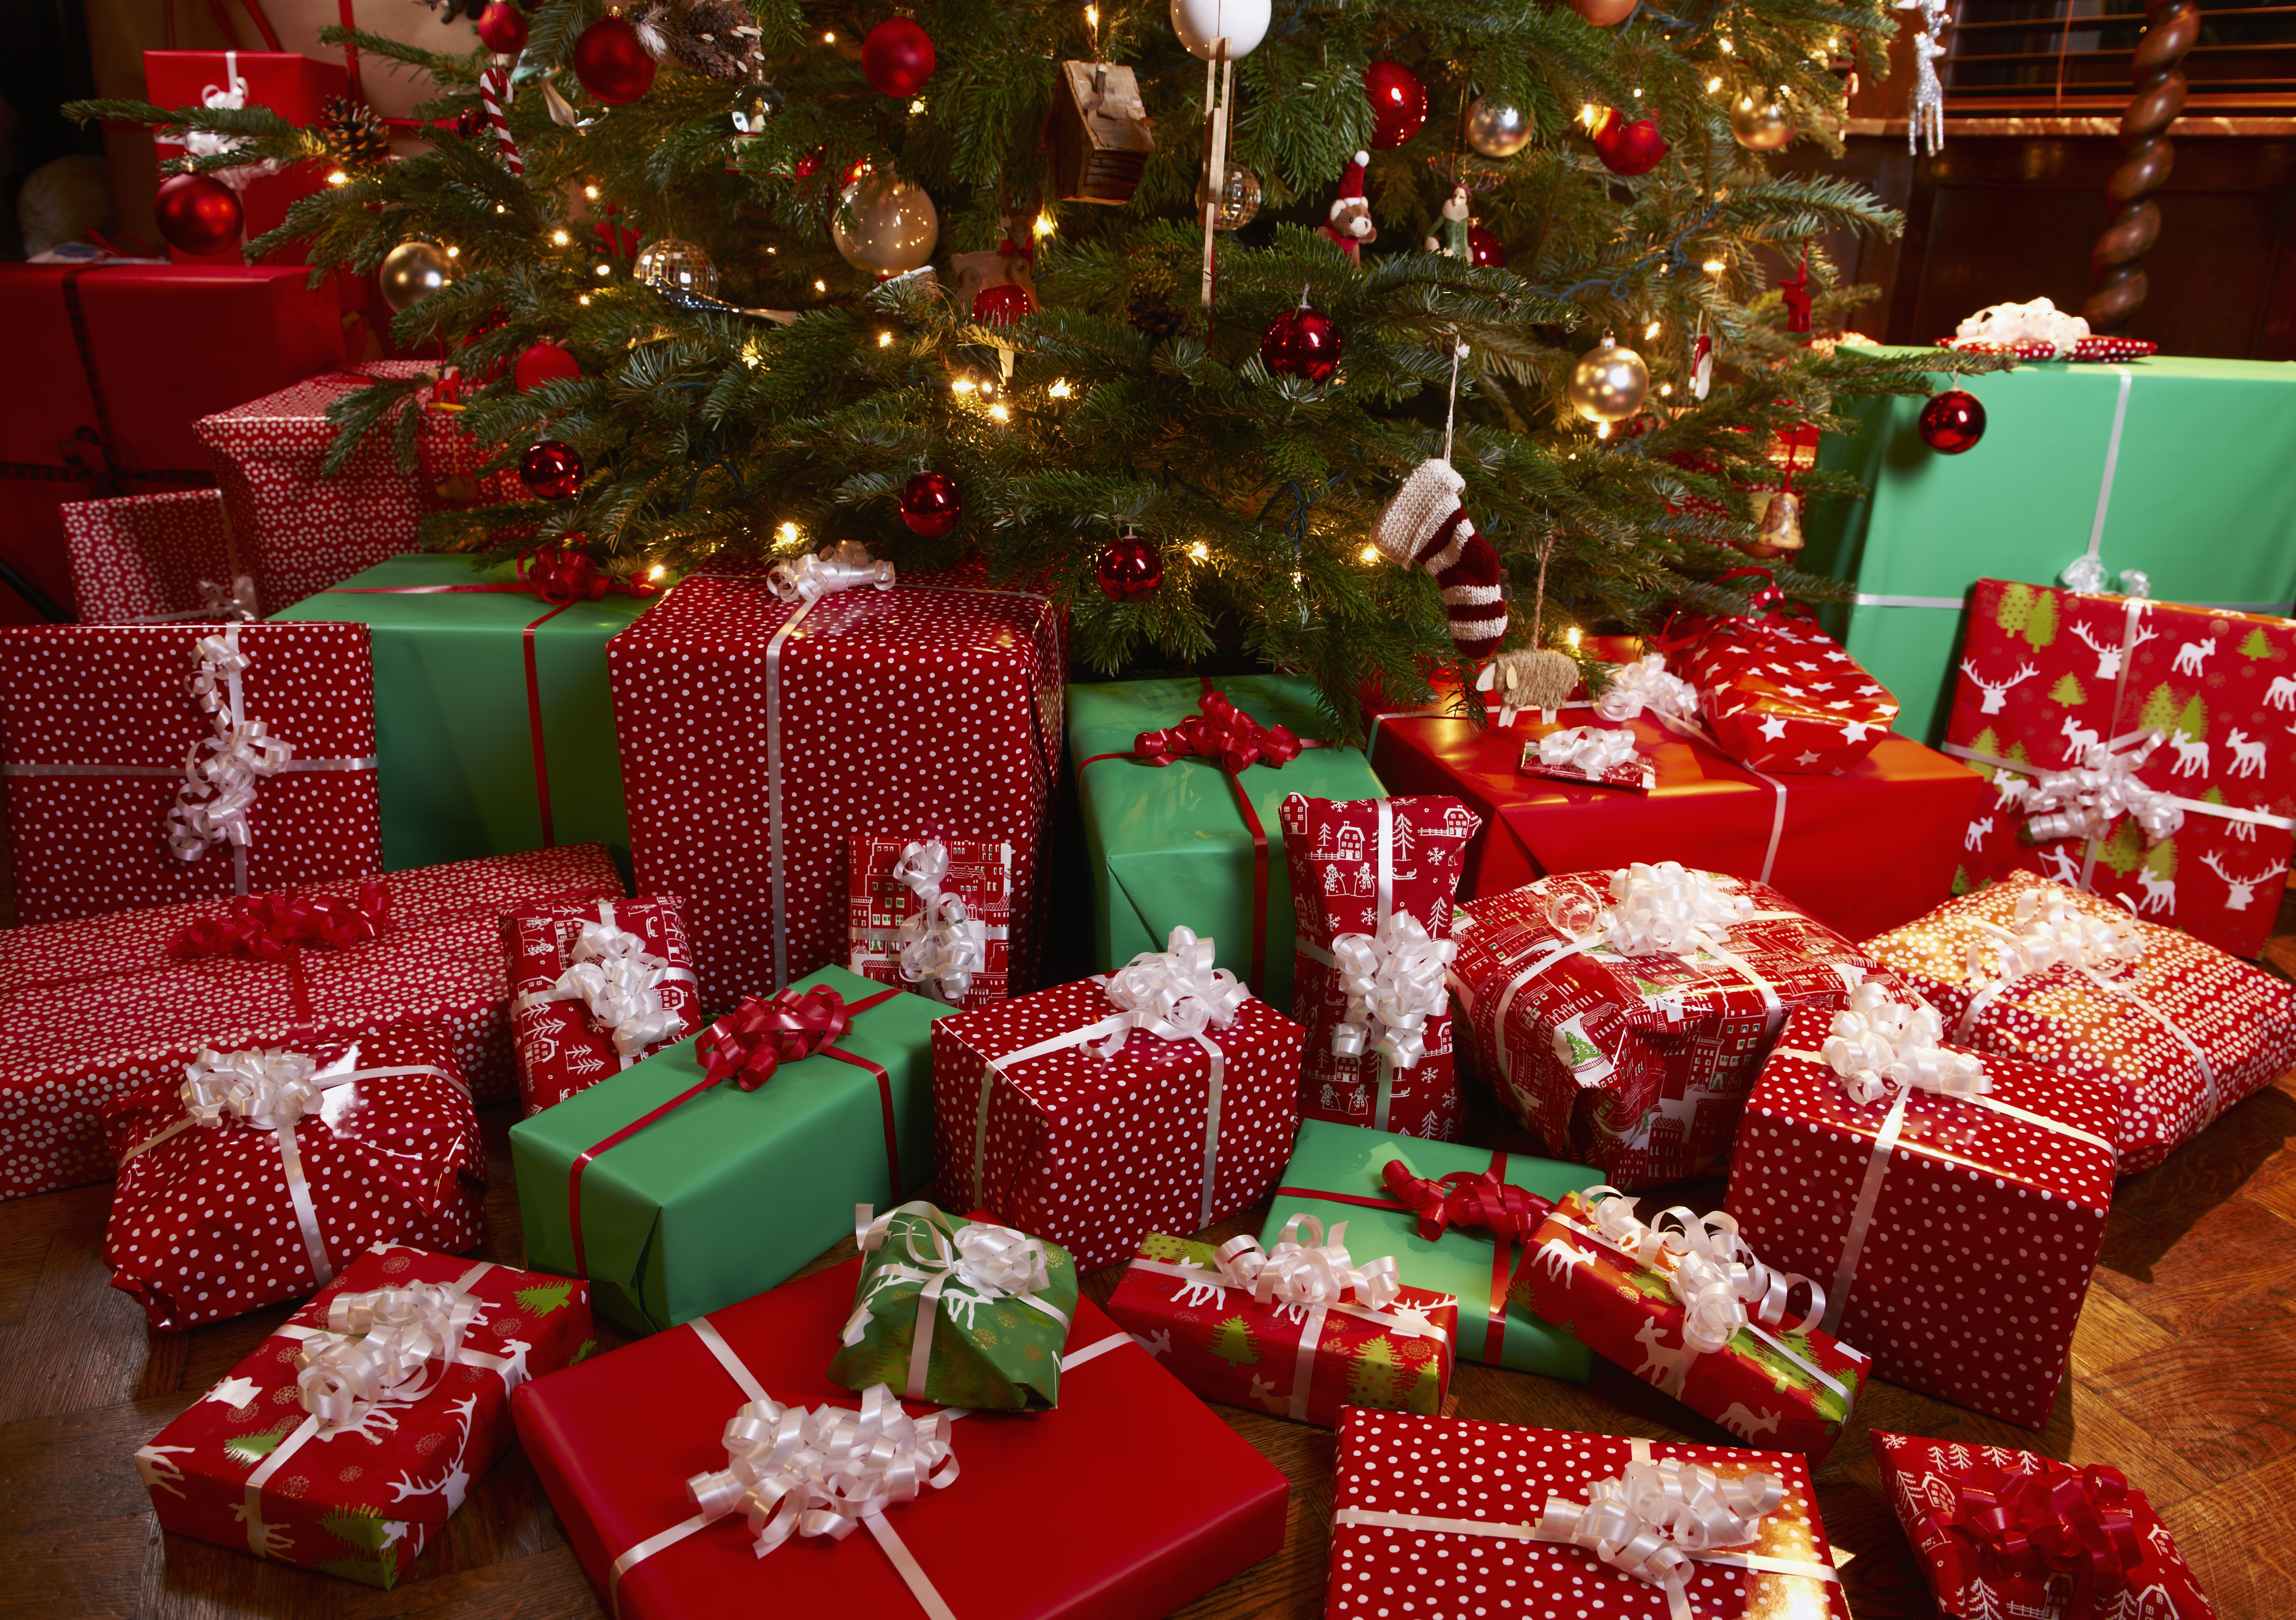 Buying Christmas Gifts Won't Make You Happier | Time